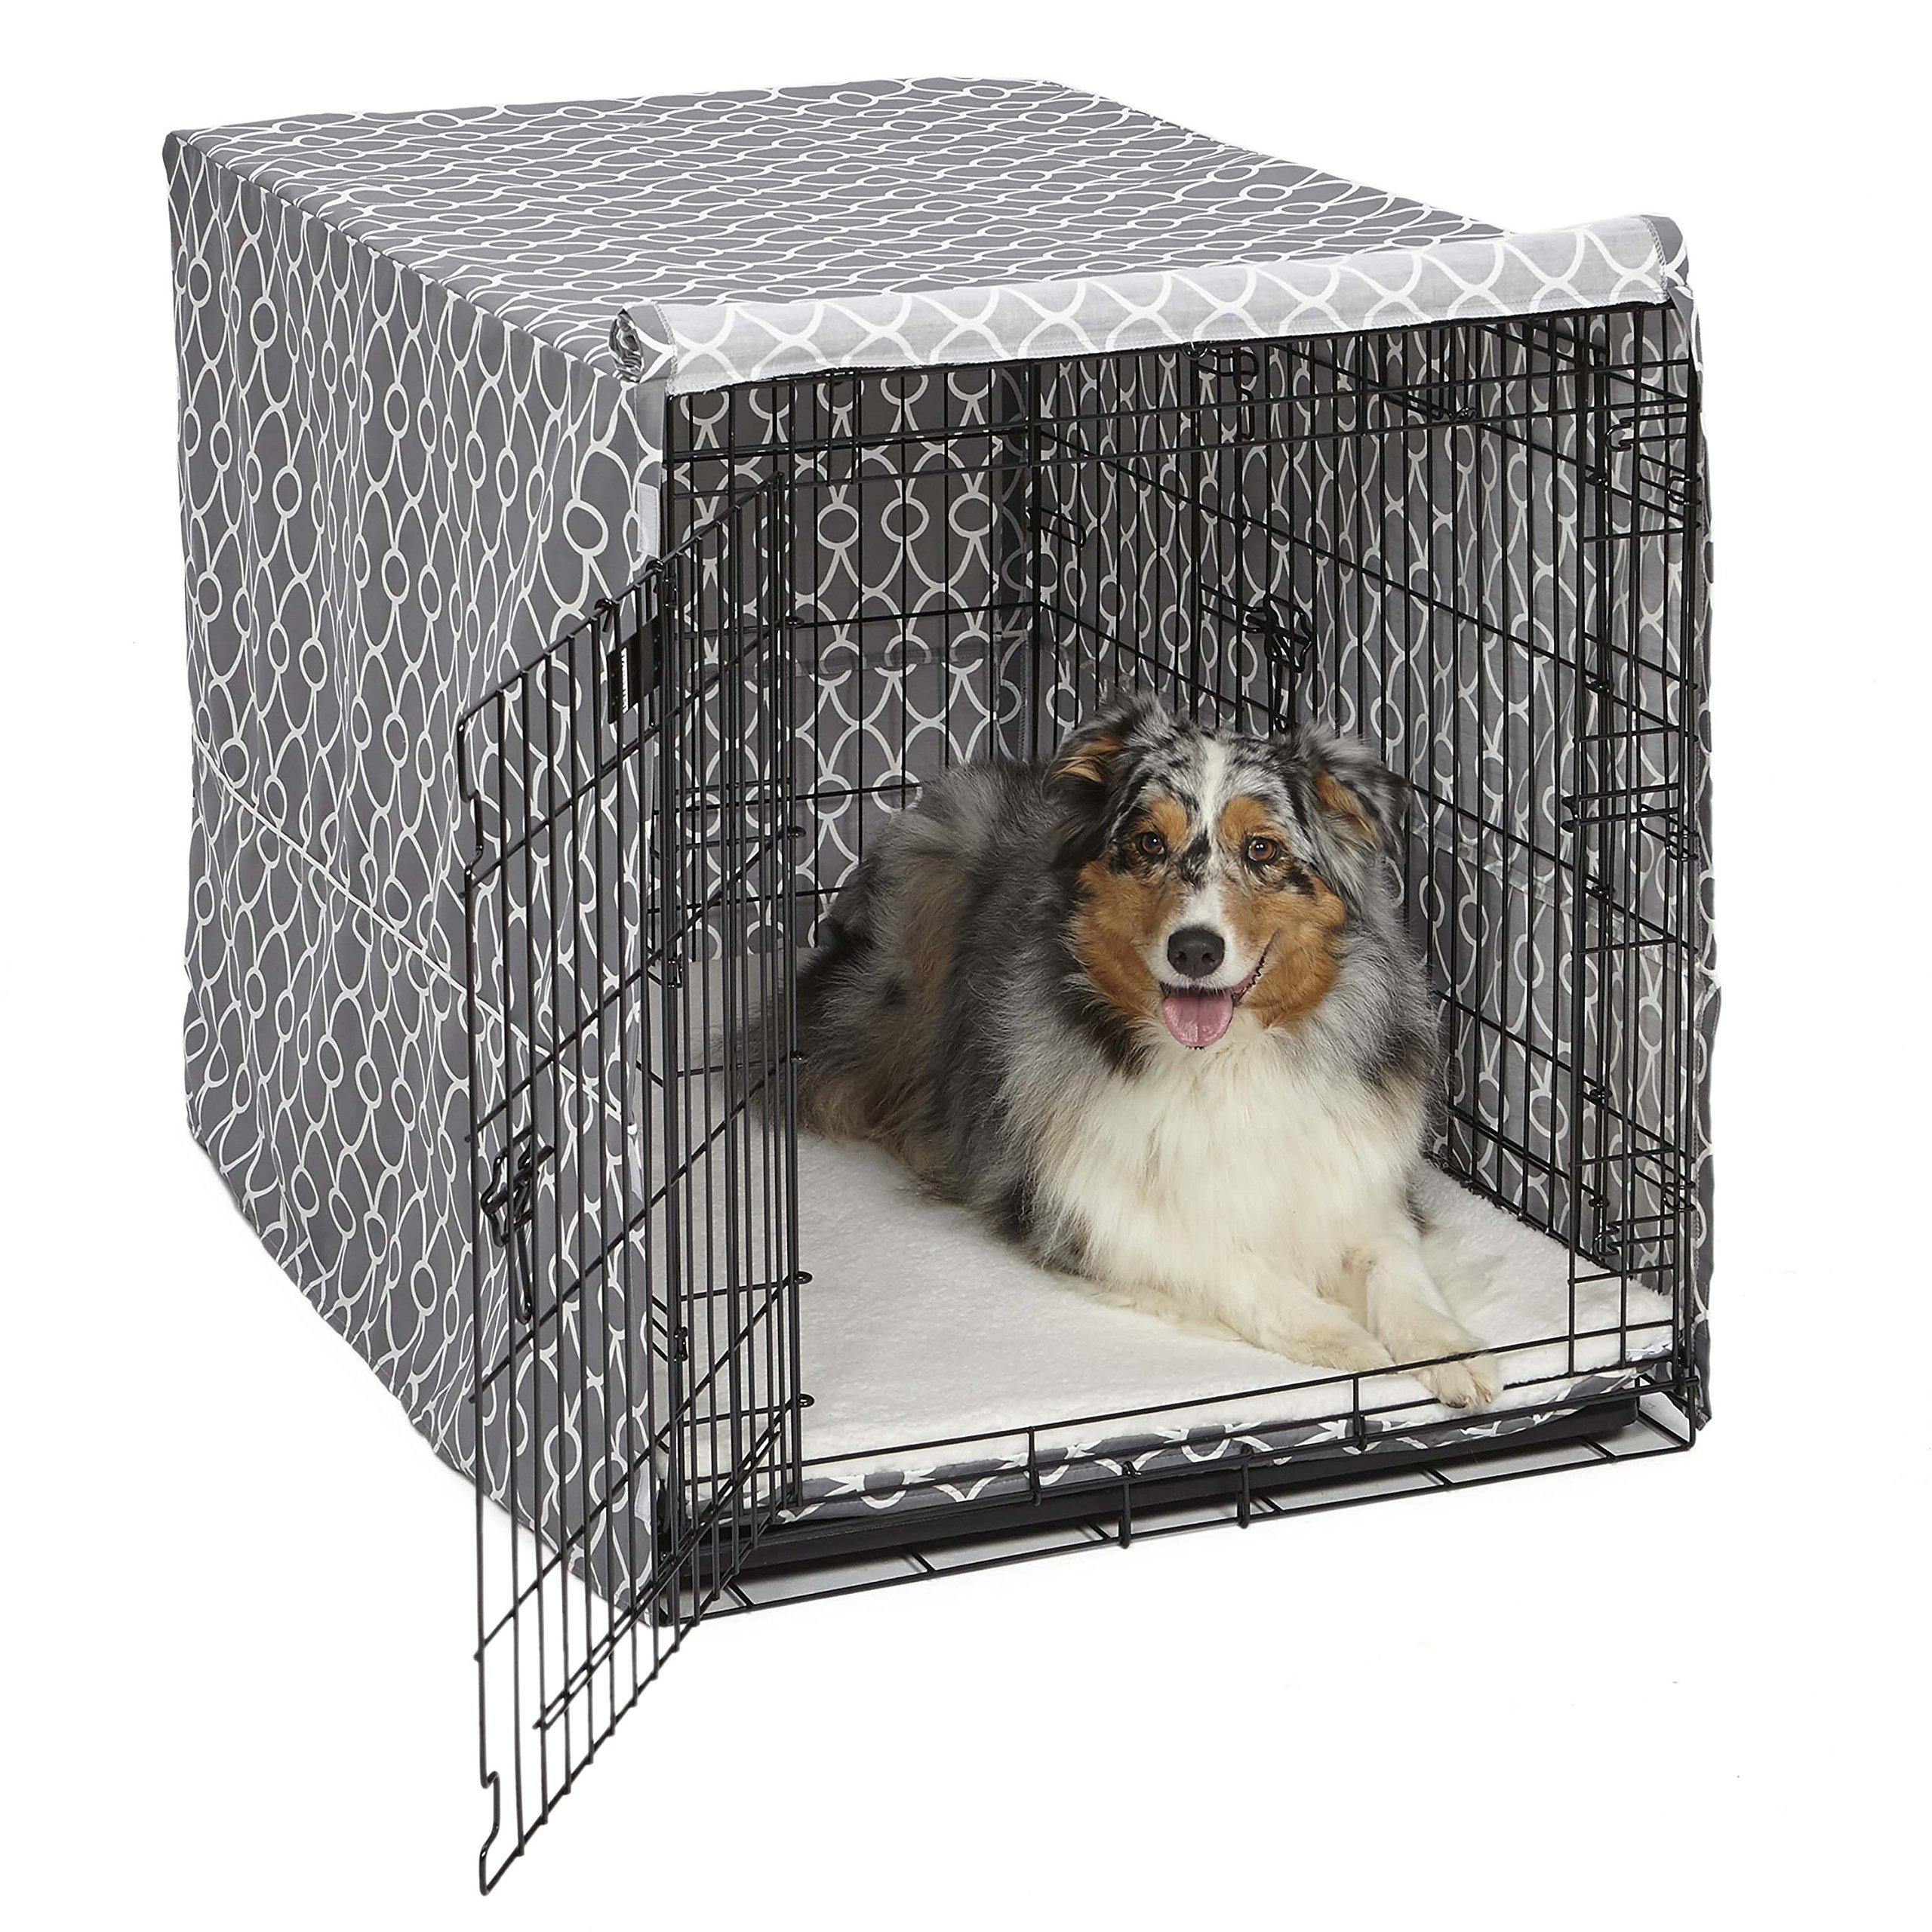 Midwest Homes for Pets Dog Crate Cover by MidWest Homes for Pets